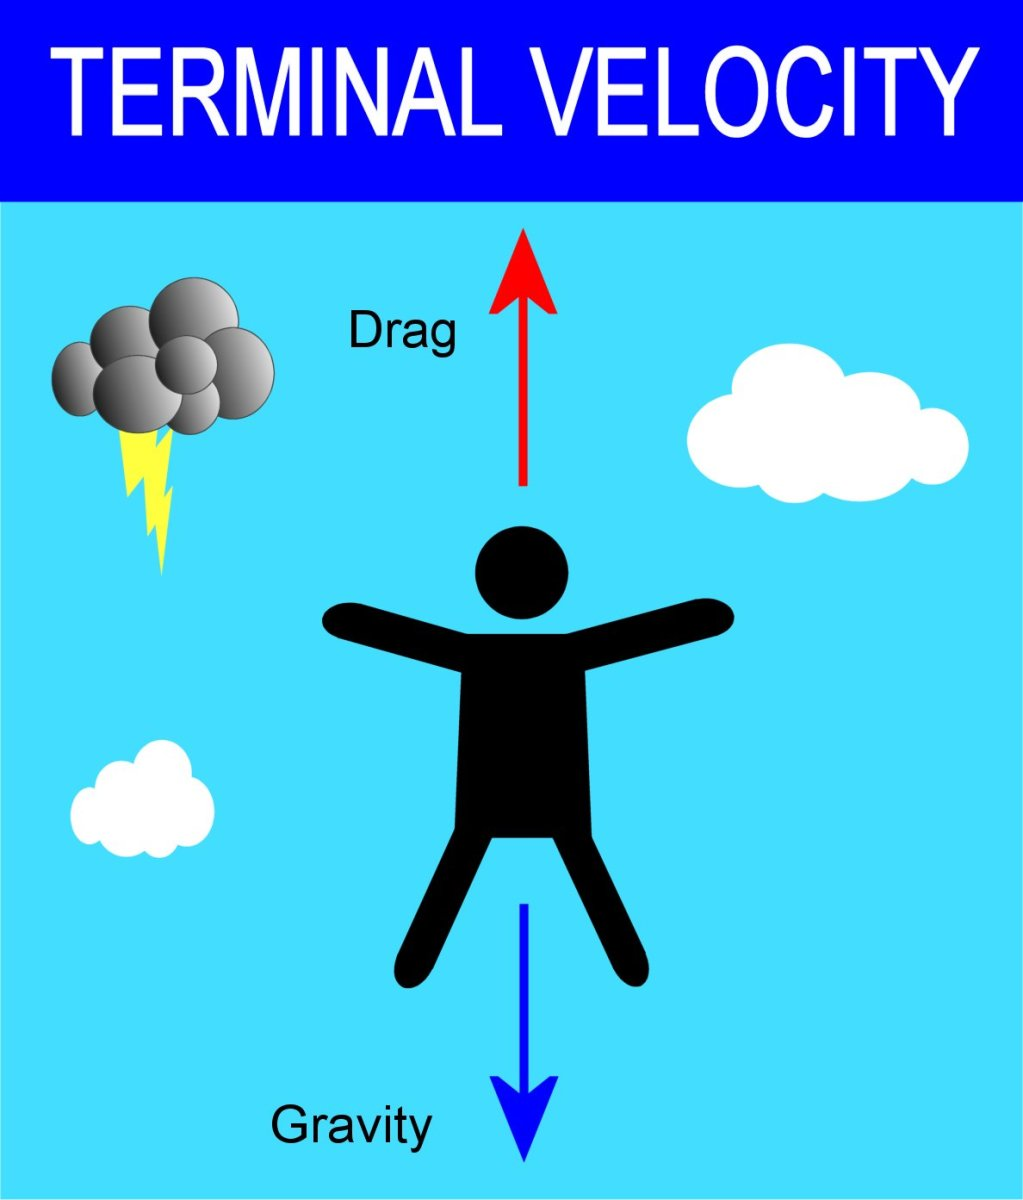 Terminal Velocity of a Human, Free Fall and Drag Force